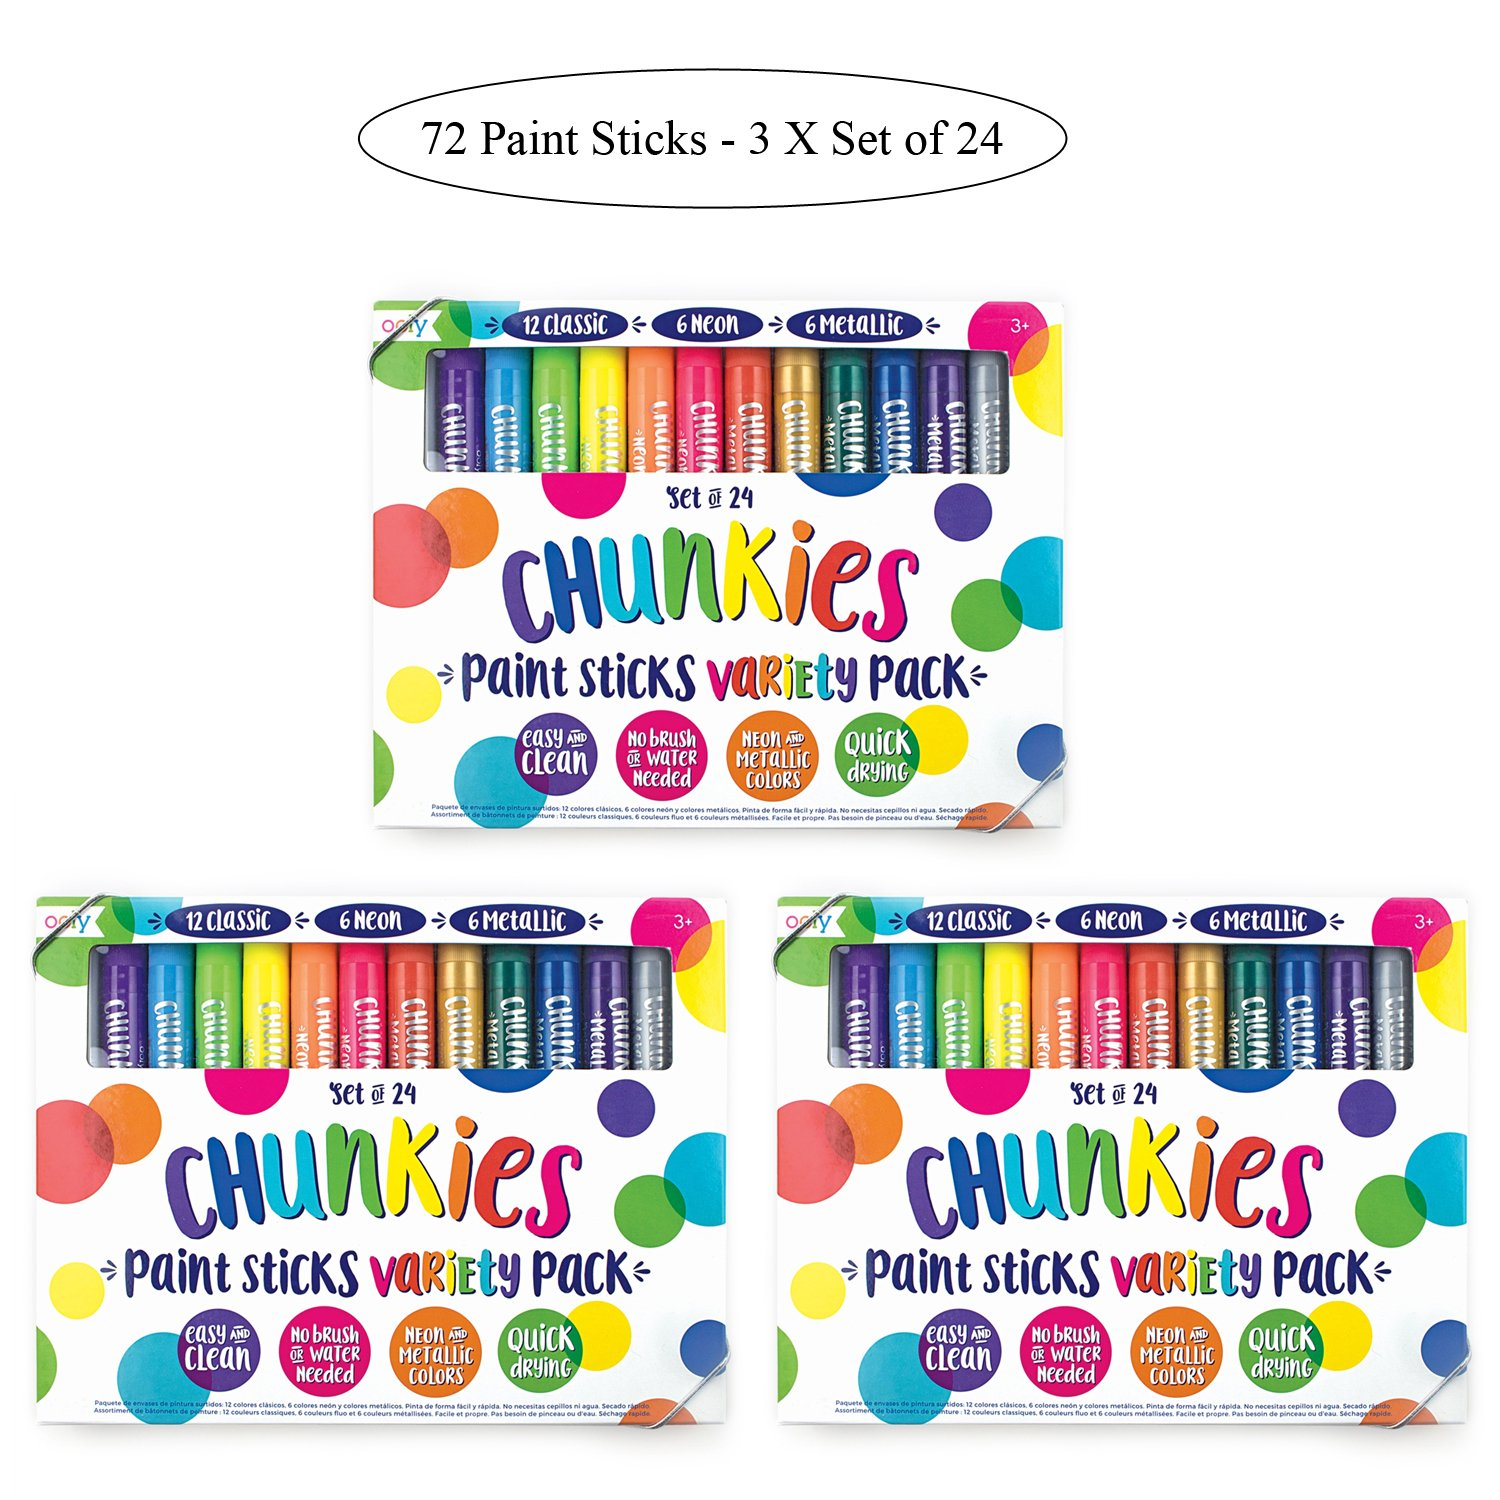 OOLY Chunkies Paint Sticks Variety Pack, 3 x Set of 24 (72 Crayons Total), Classic Neon & Metallic Colors